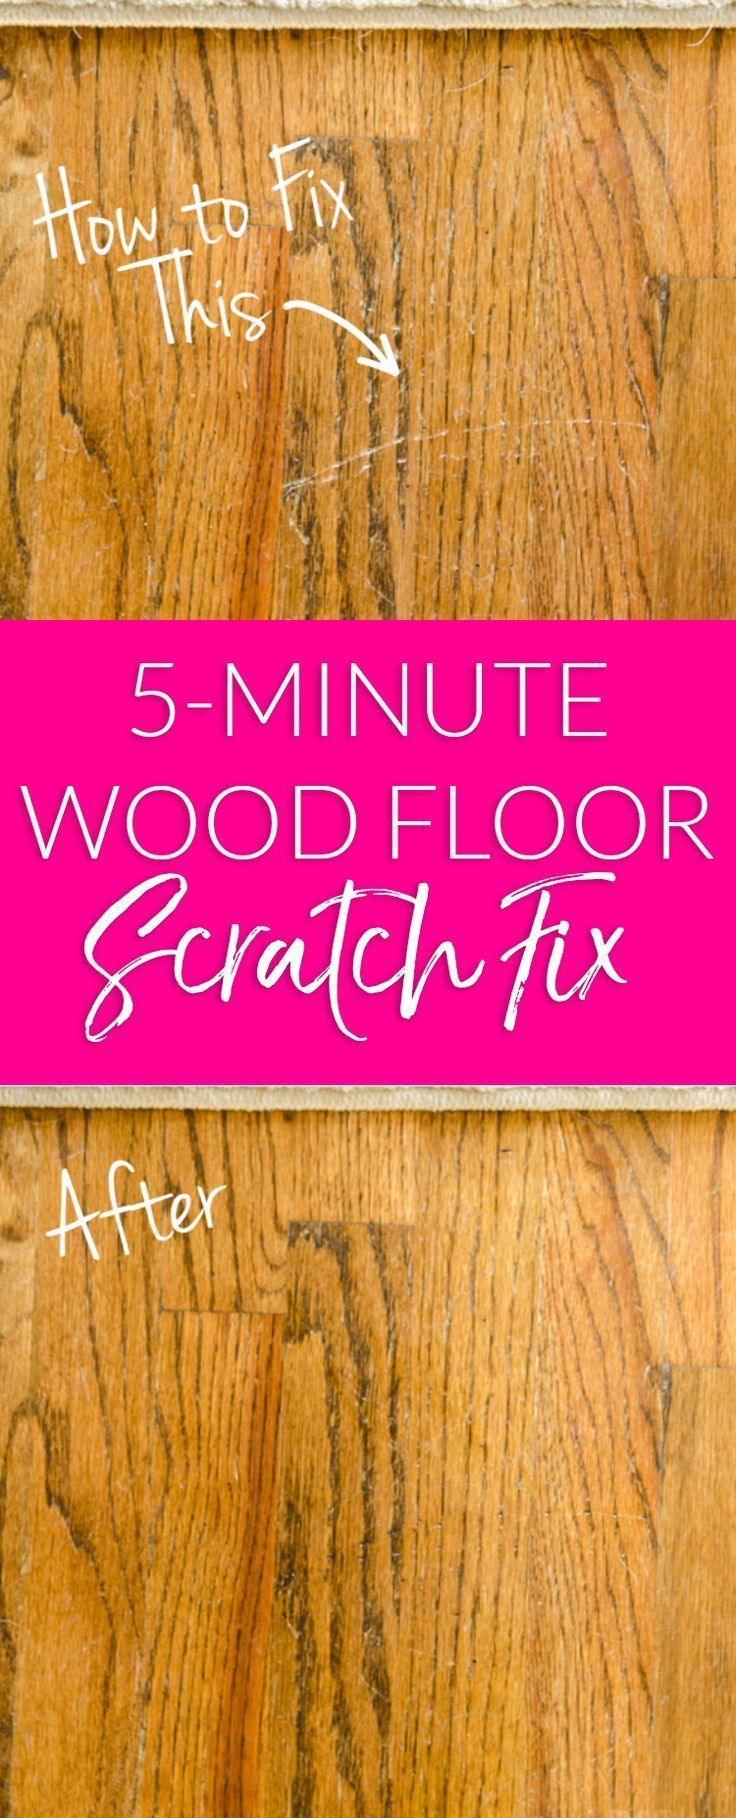 Hardwood floor scratches try this quick and easy hack to